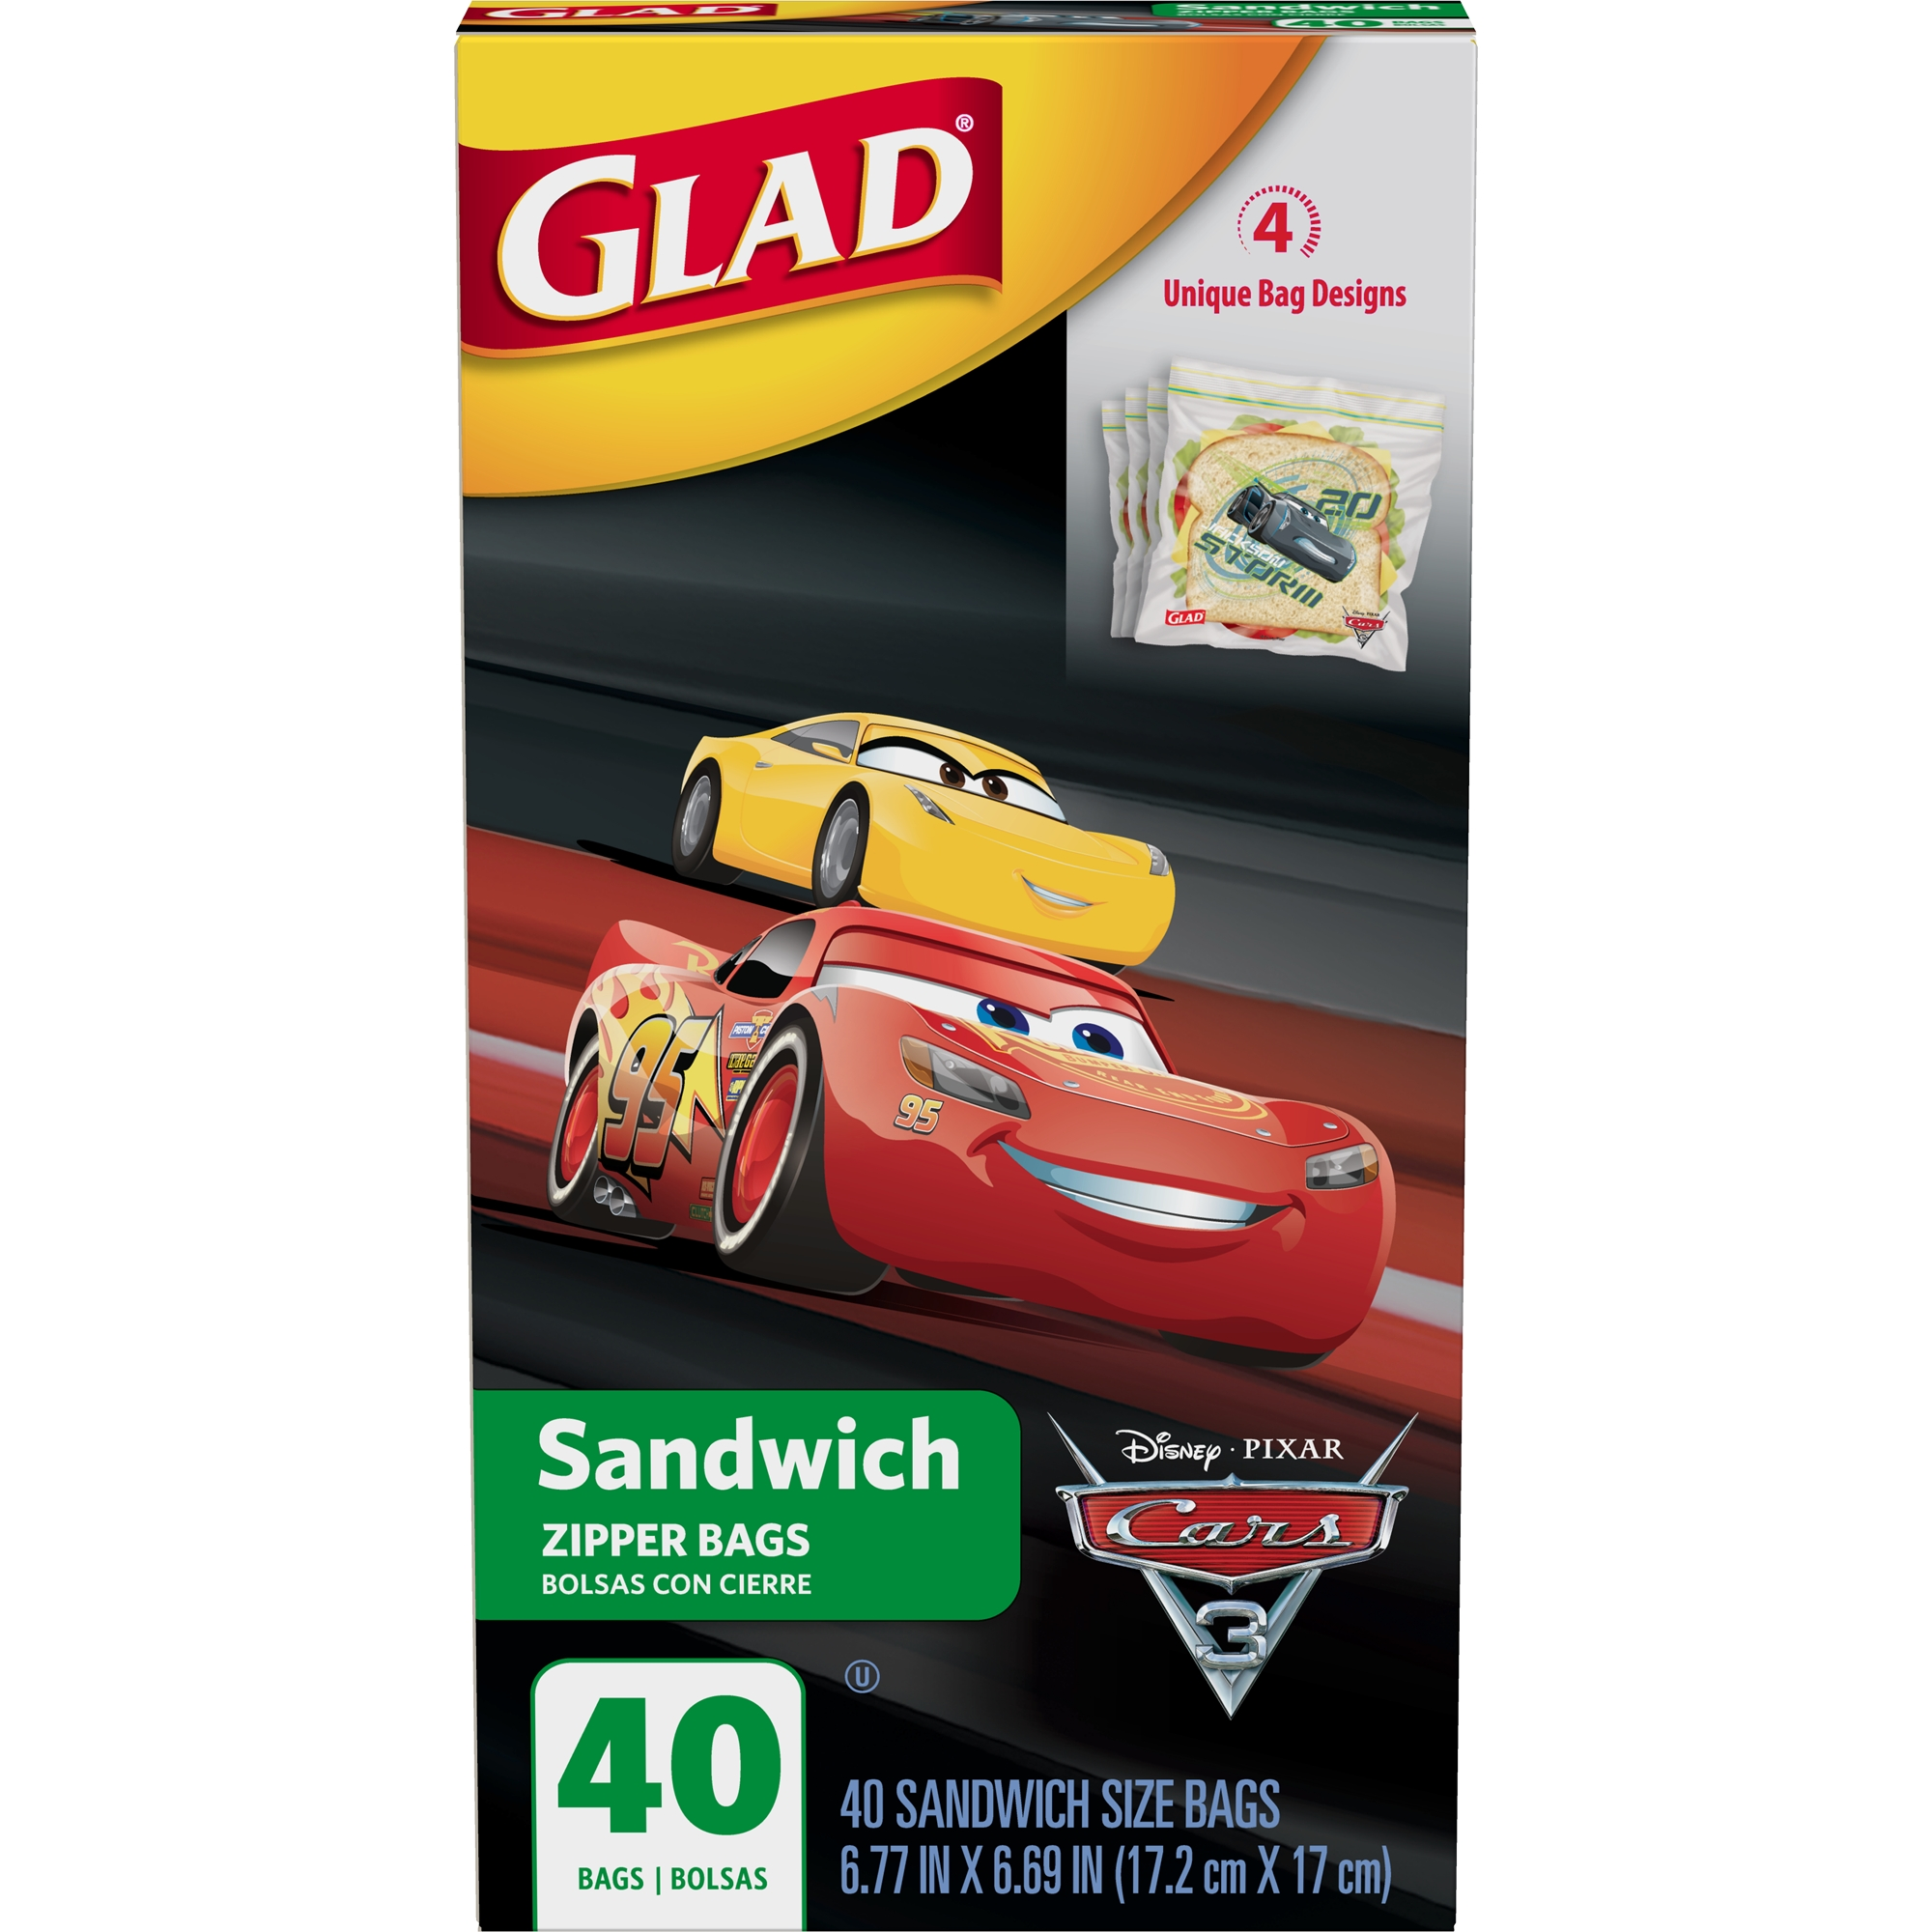 Glad Zipper Food Storage Sandwich Bags - Disney-Pixar Cars - 40 ct